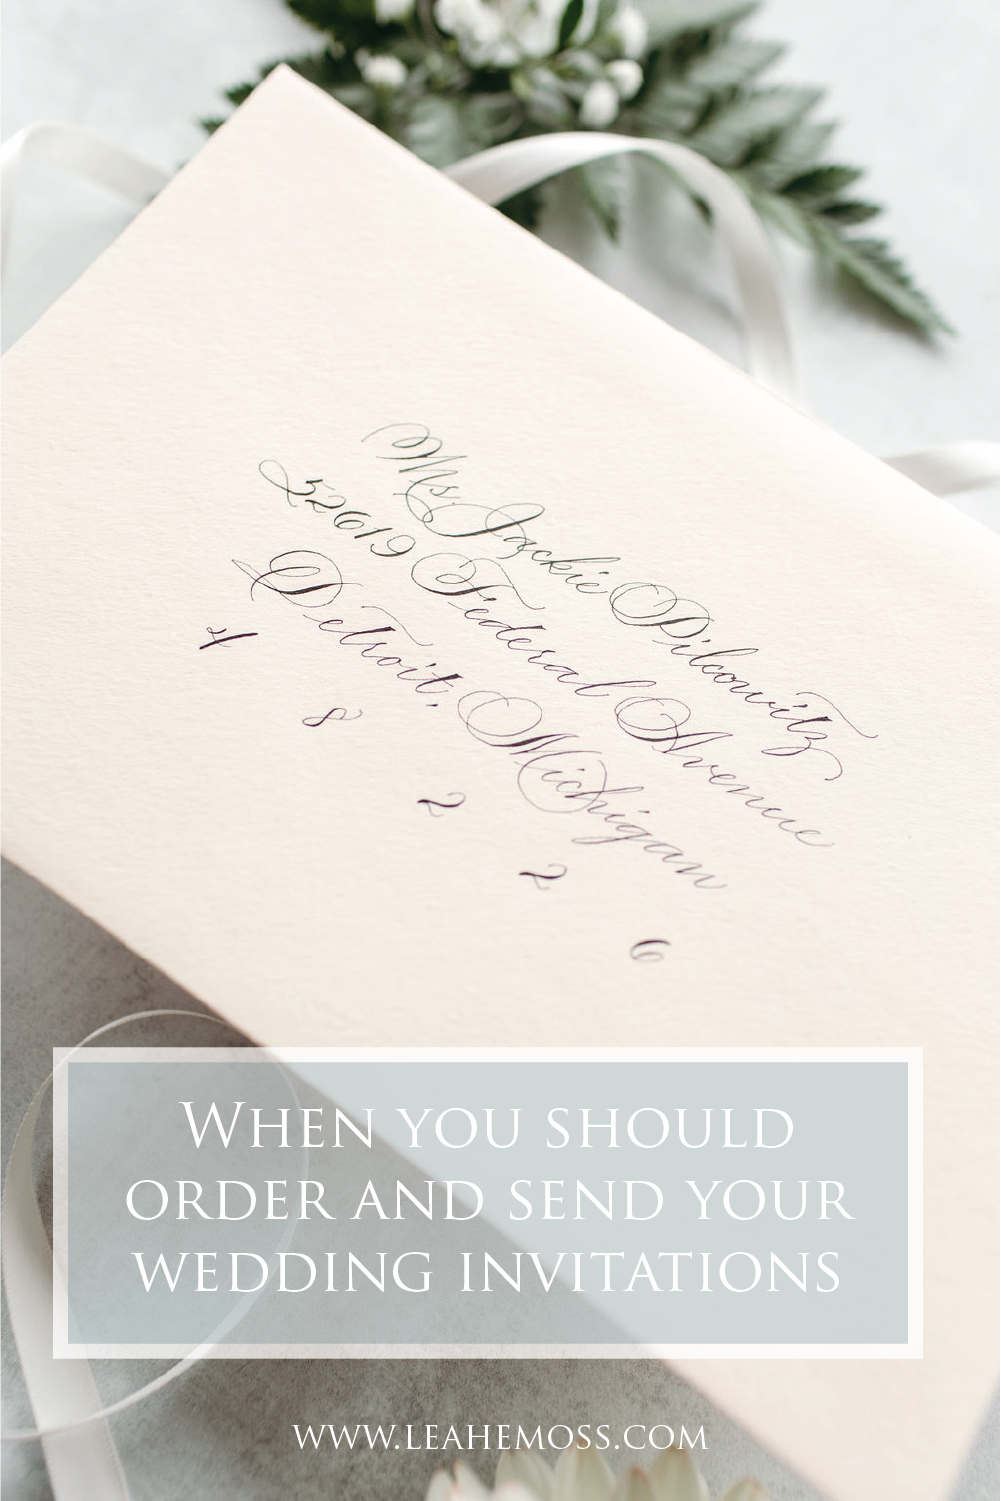 I Ve Summarized My Expert Tips Into A Handy Free Workbook So You Can Take The Guesswork Out Of When To Order And Send Your Invitations It S My Little Wedding